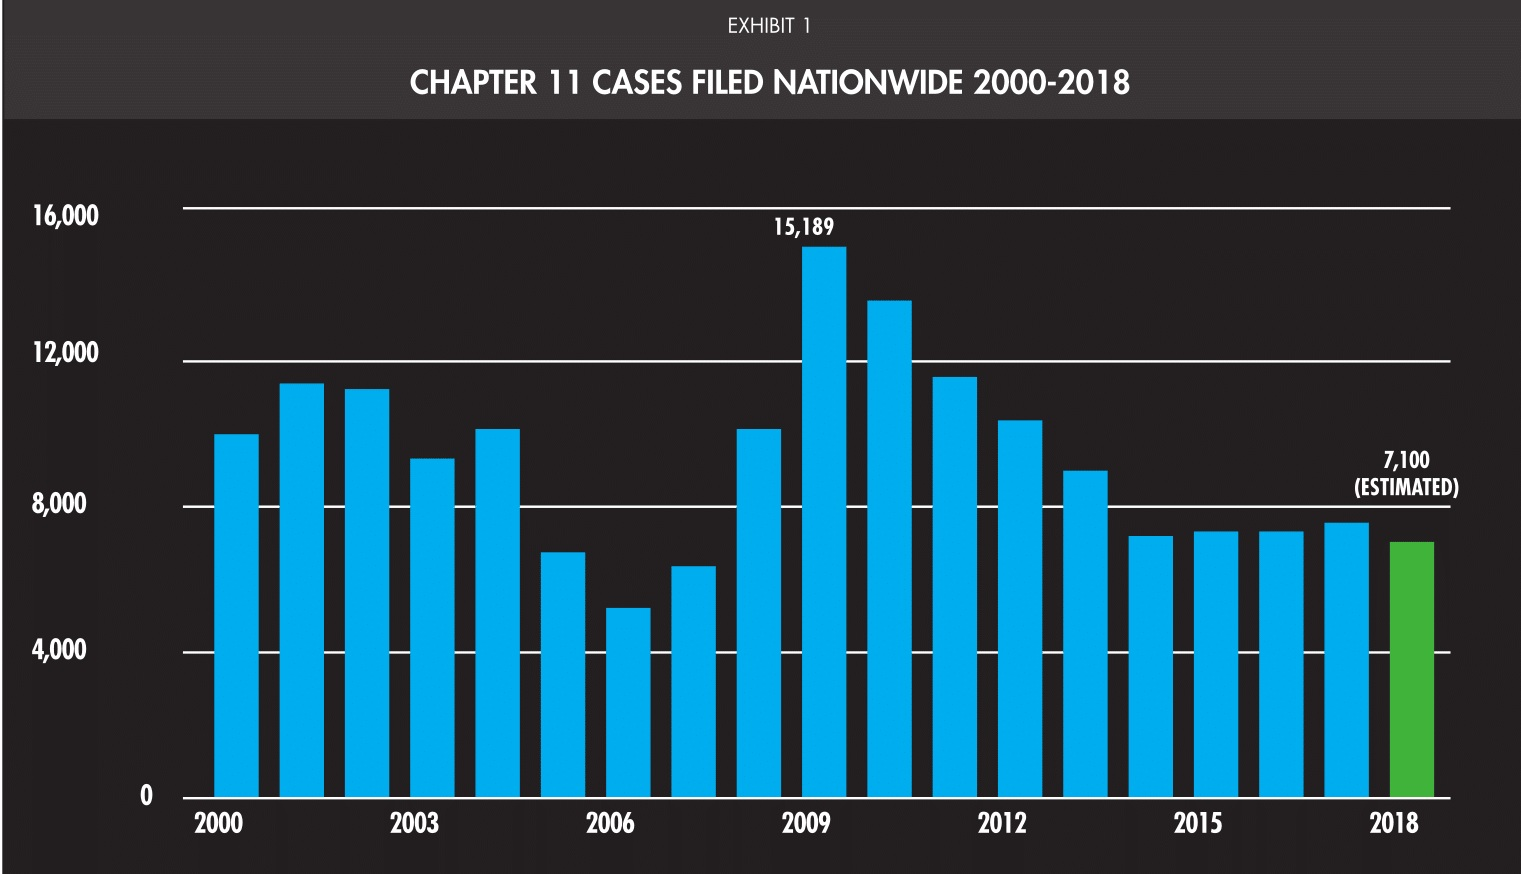 chapter 11 cases filed nationwide 2000-2018